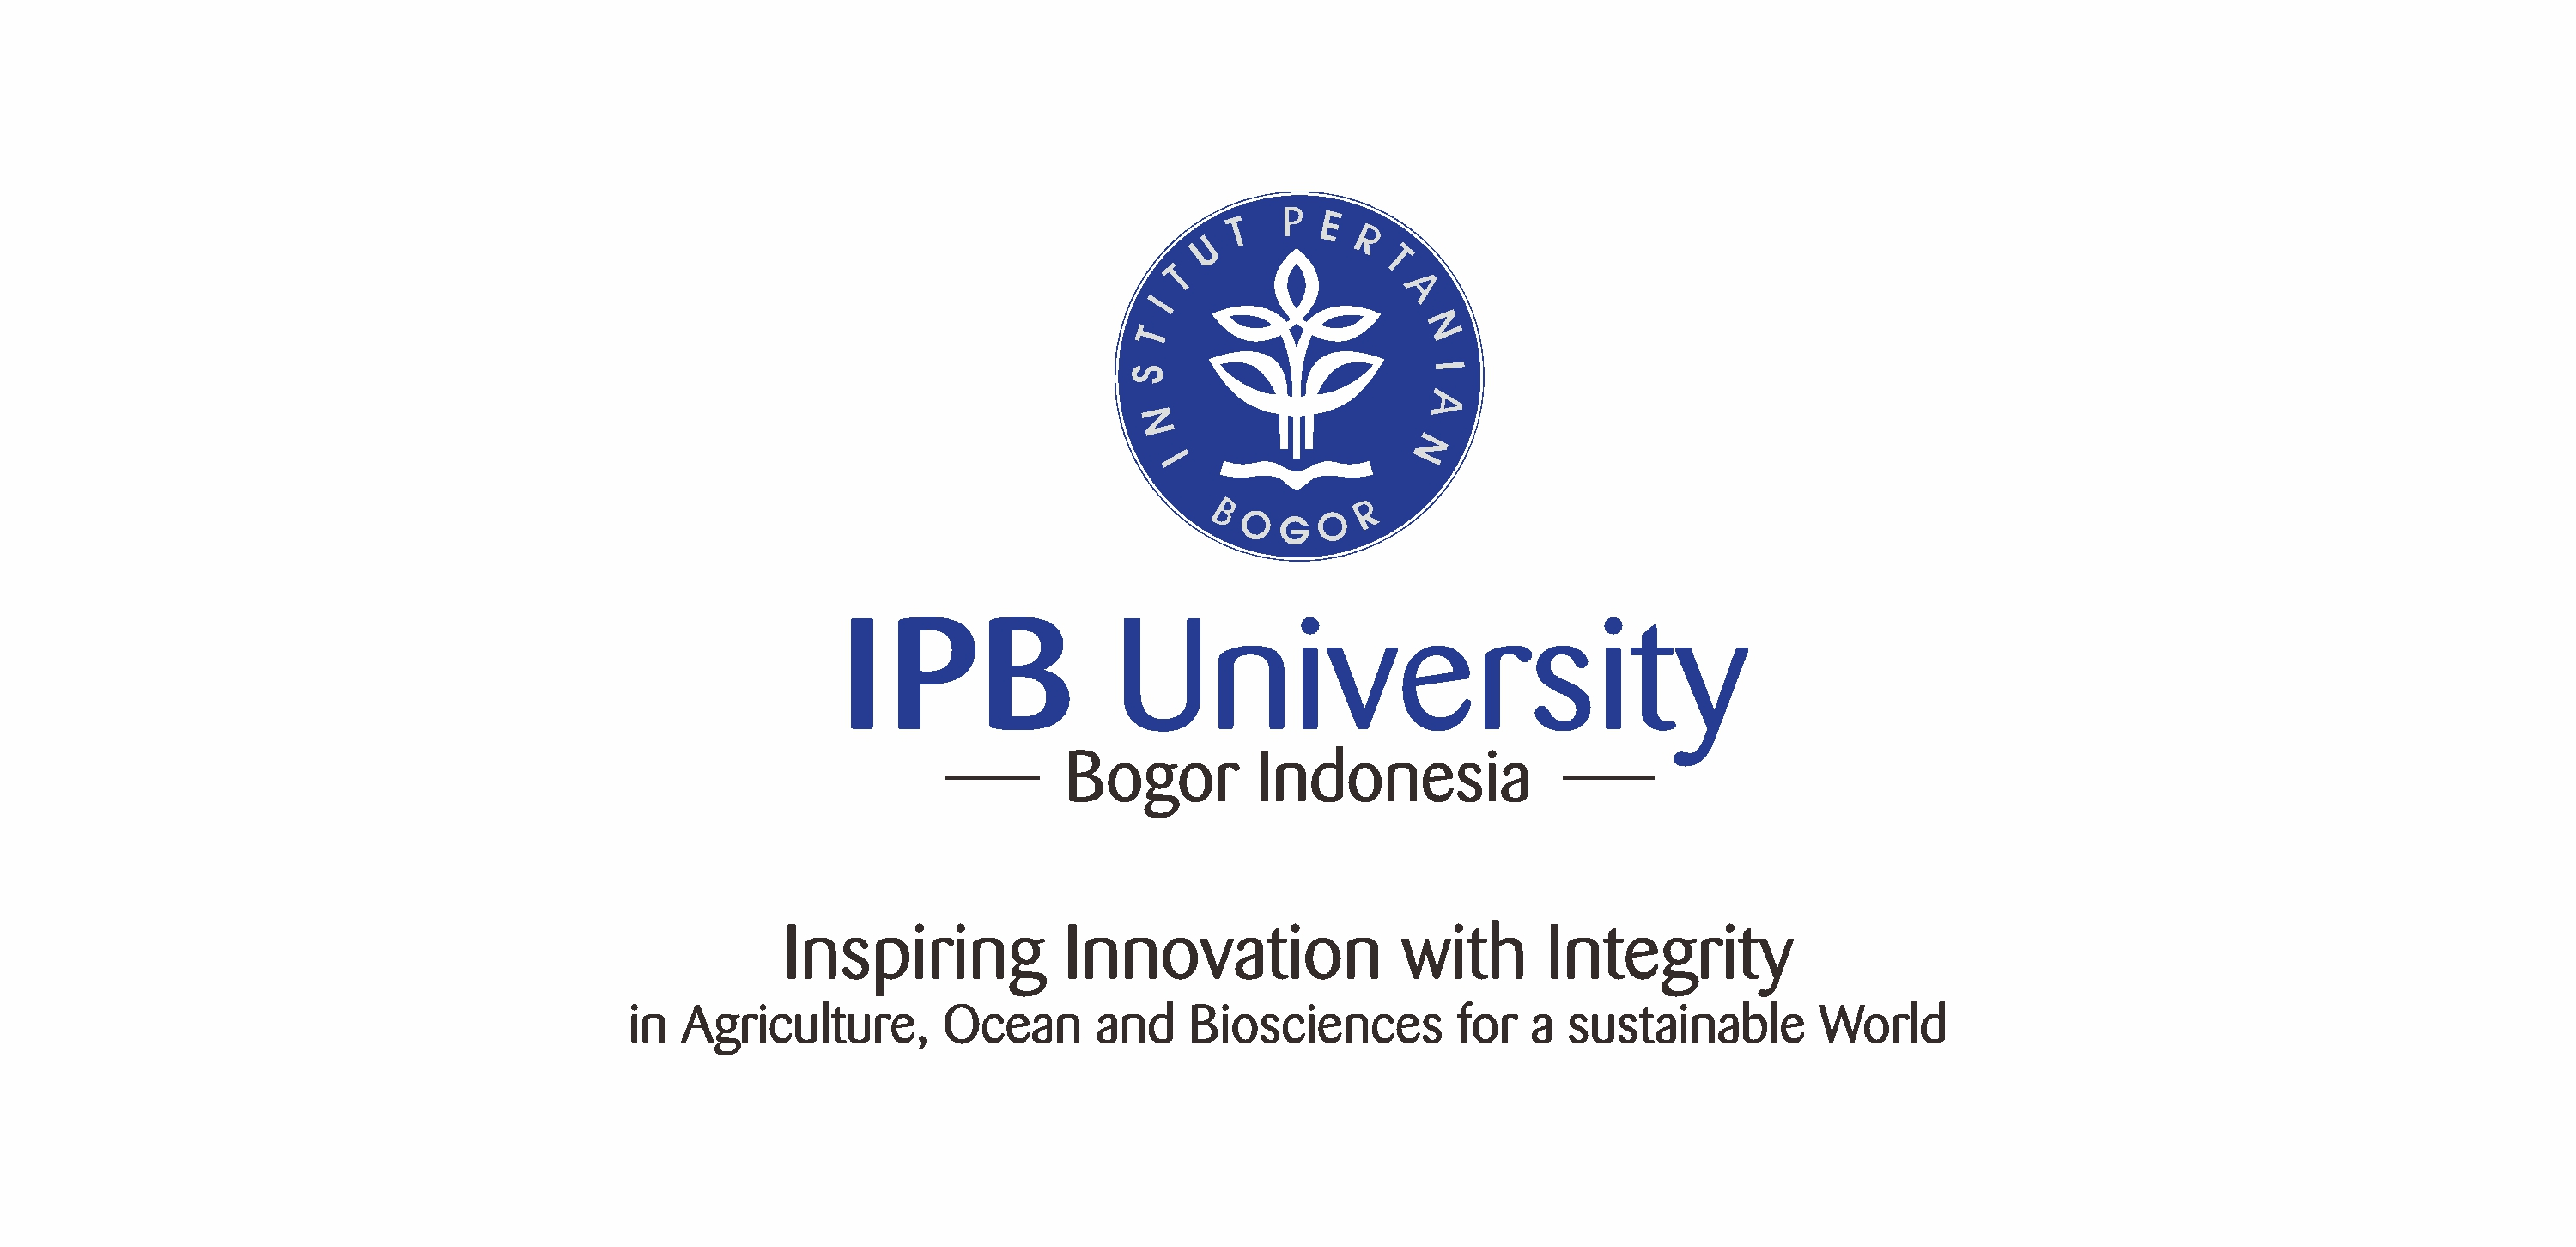 Bogor Agricultural University to IPB University: The